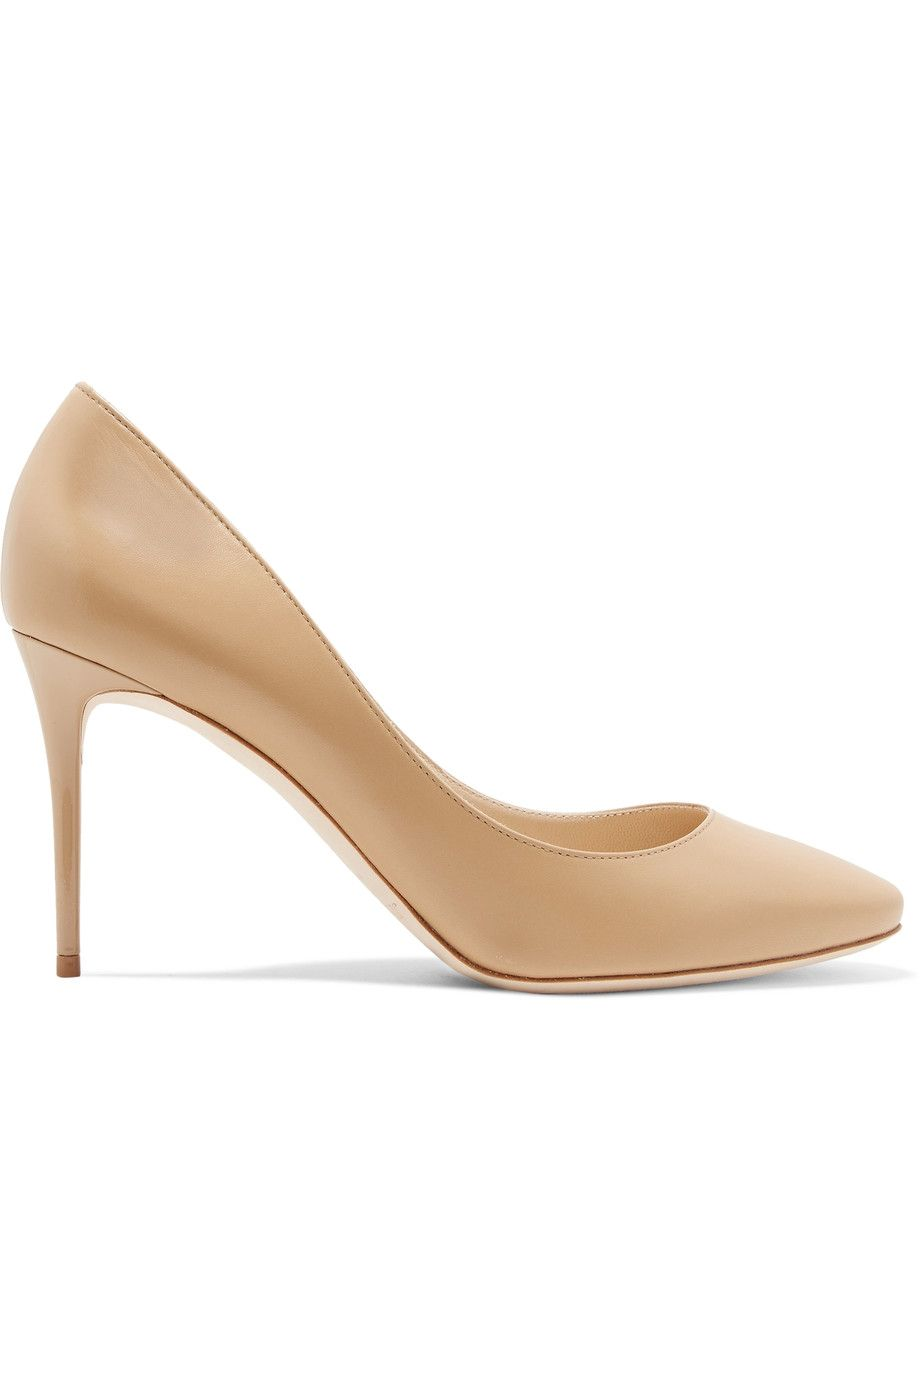 Jimmy Choo Nude Romy 85 Patent Leather Pumps in Natural